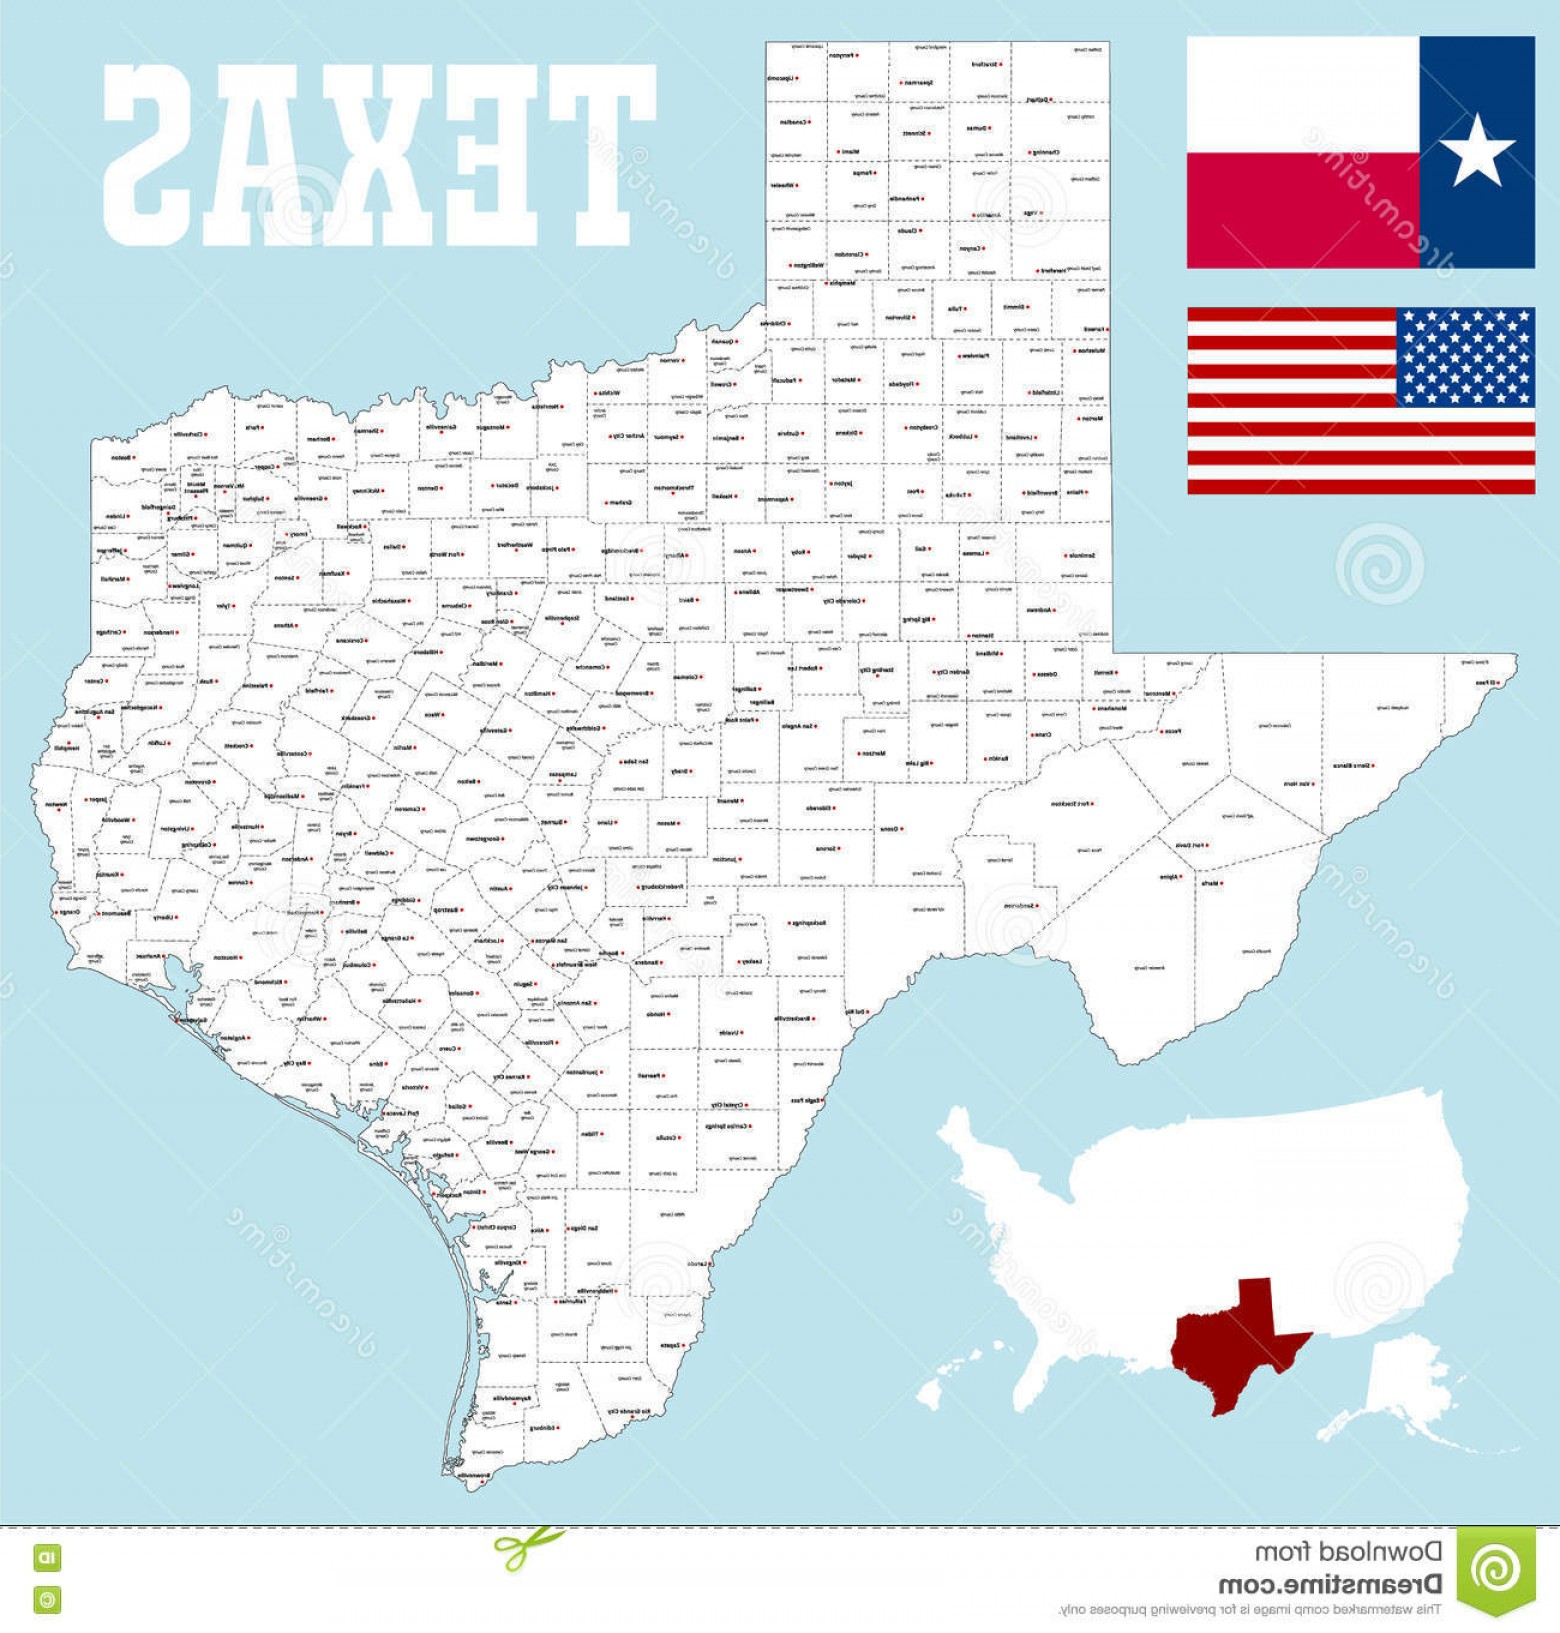 Texas Counties Map Vector: Stock Illustration Texas County Map Large Detailed State All Counties Seats Image